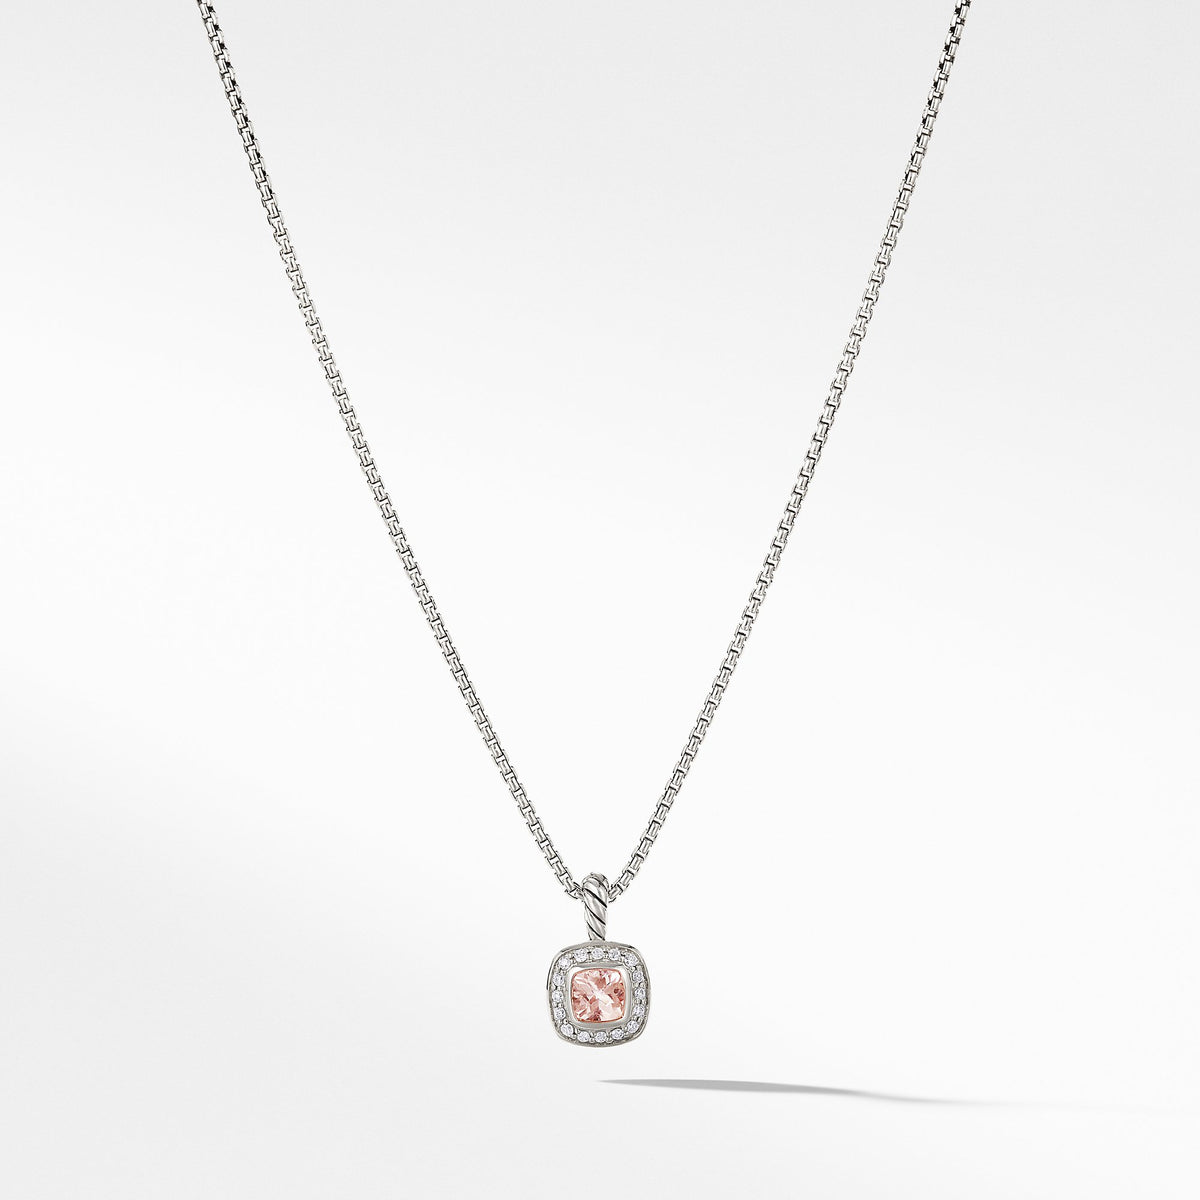 Albion Kids Necklace with Morganite and Diamonds, 4mm